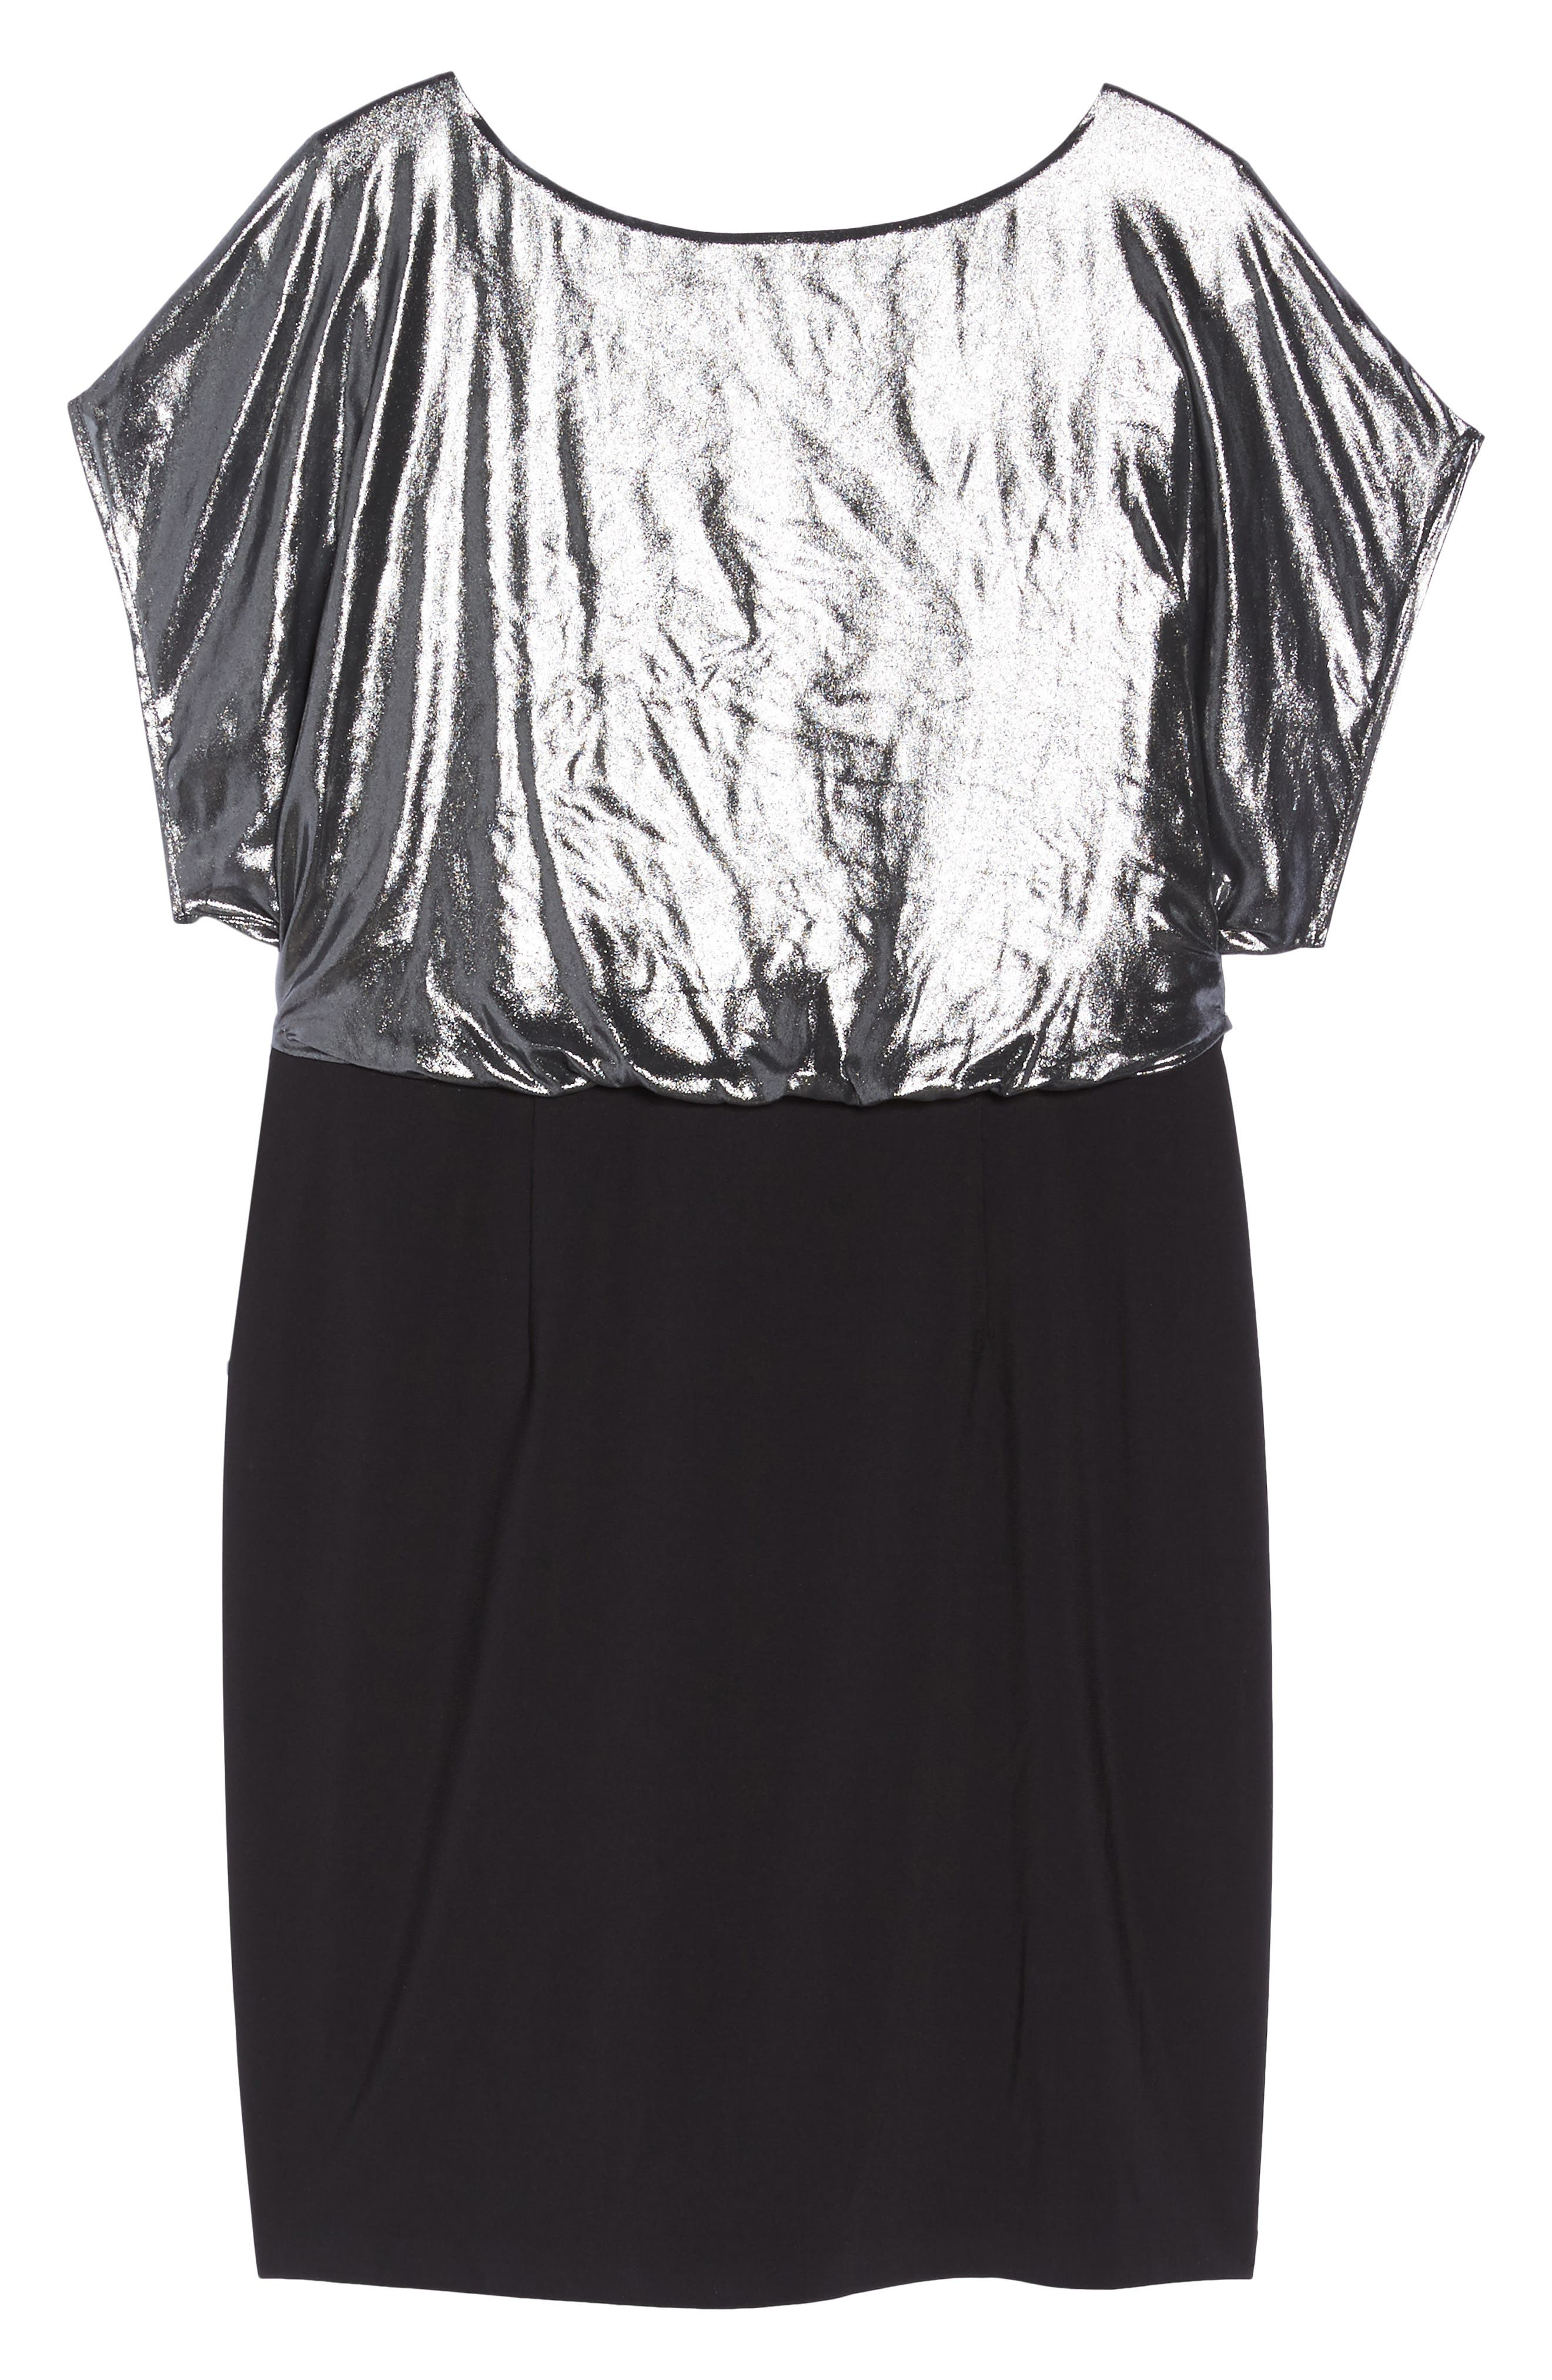 Foiled Blouson Dress,                             Alternate thumbnail 6, color,                             Gunmetal/ Black